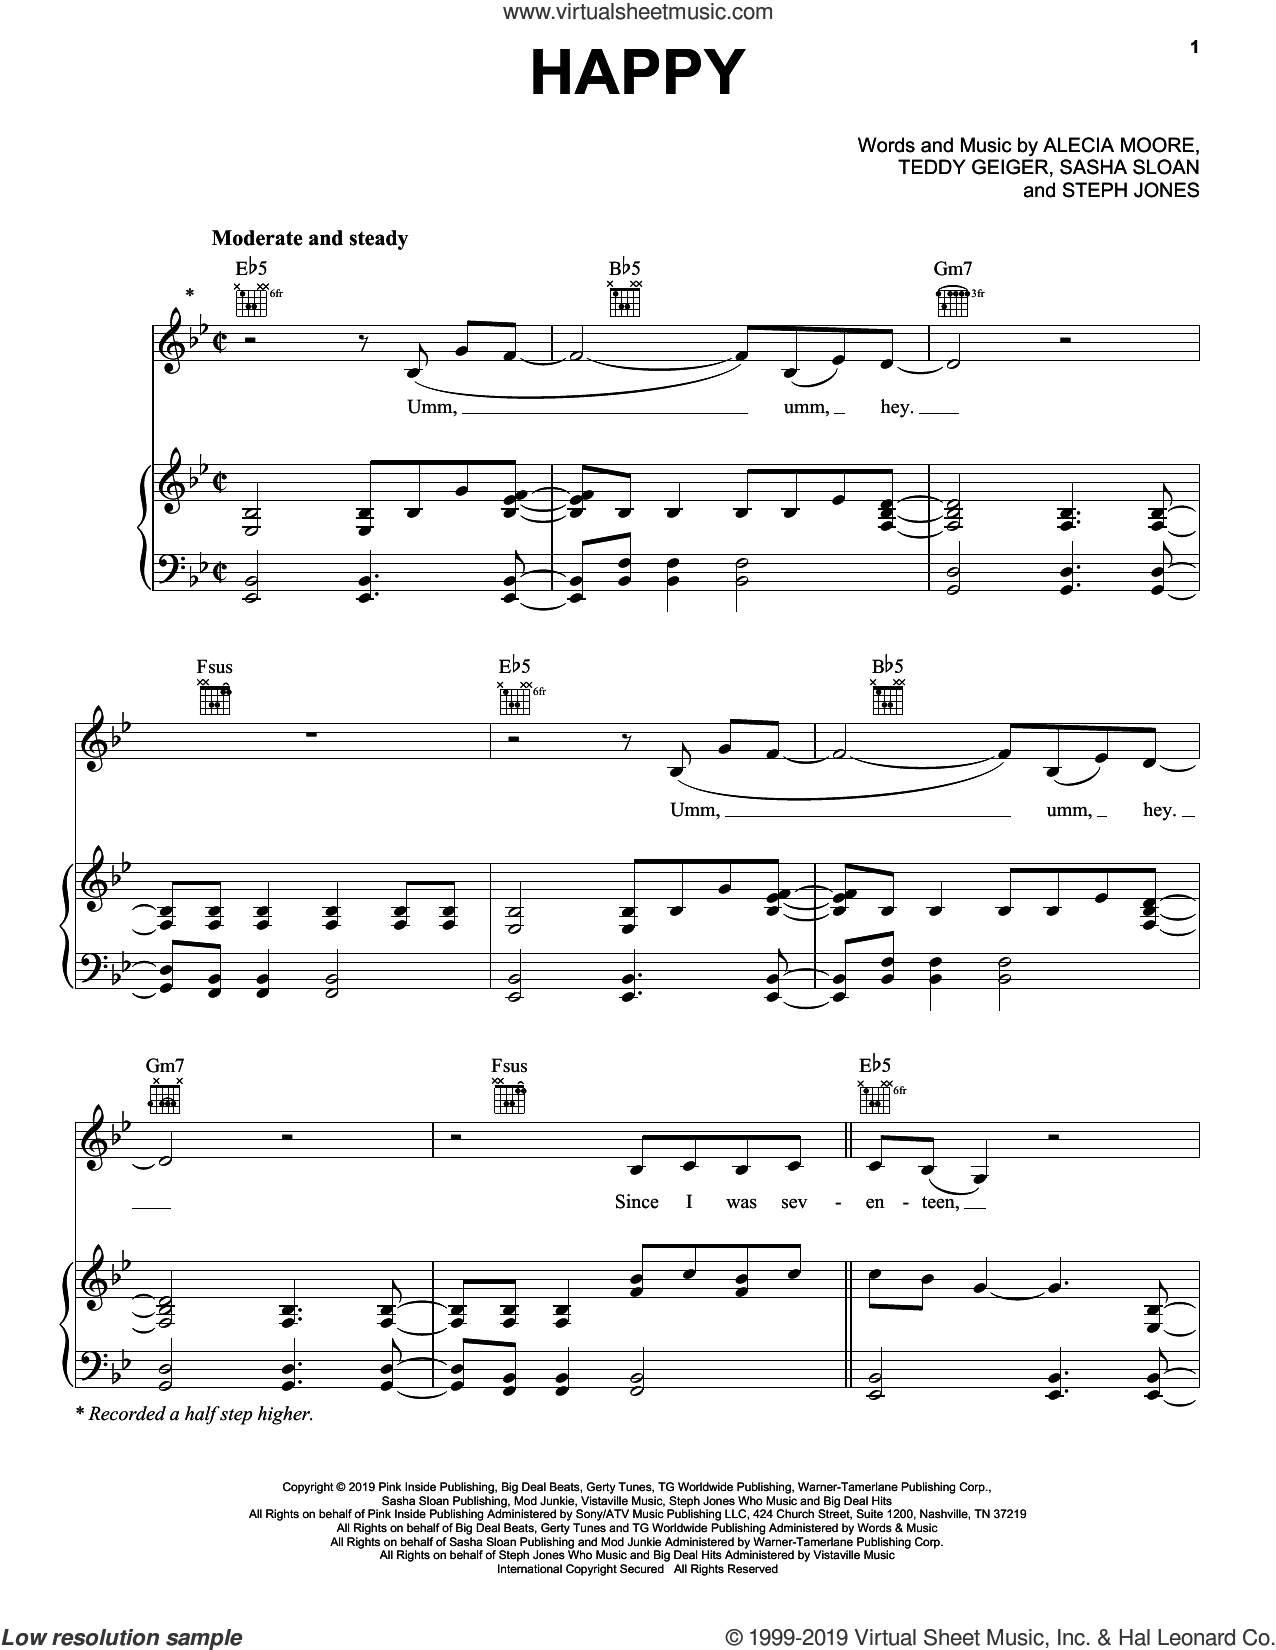 Happy sheet music for voice, piano or guitar by Teddy Geiger, Miscellaneous, P!nk, Alecia Moore, Sasha Sloan and Steph Jones, intermediate skill level